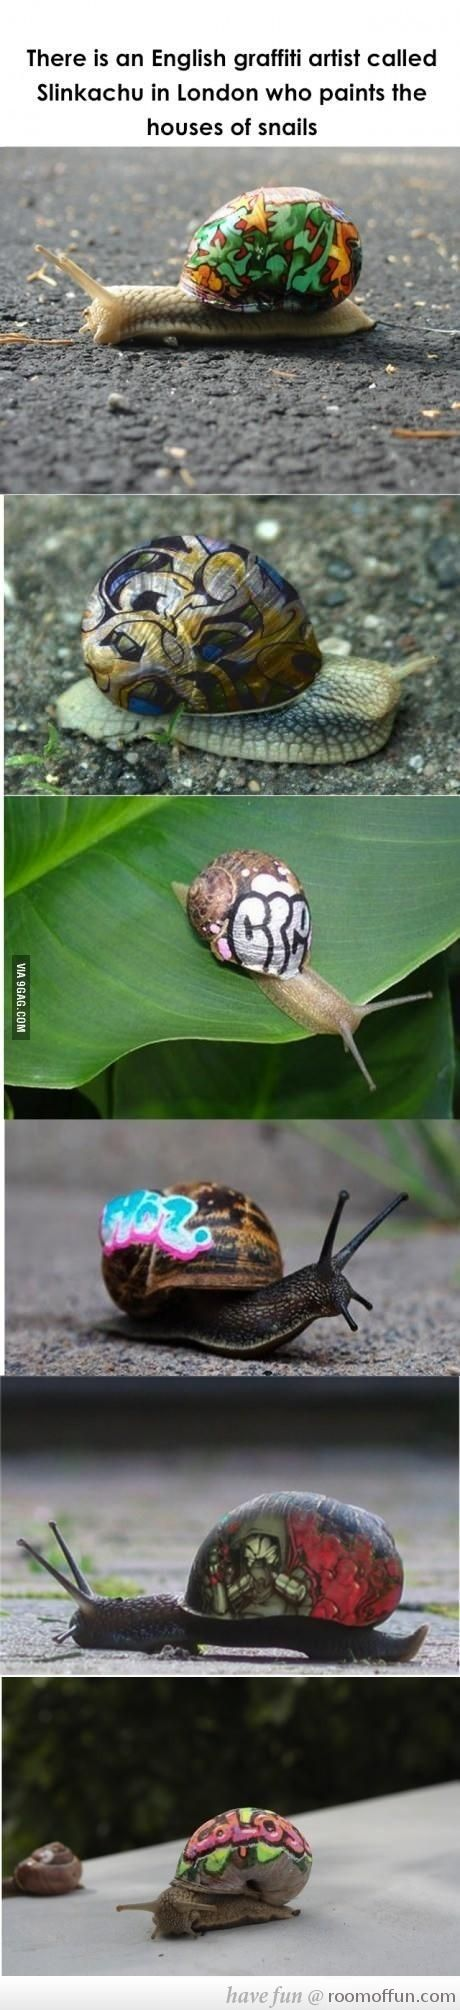 Snail Graffiti - There is a graffiti artist from London that paints on the shells of snails!| street and graffiti art inspiration | digital media arts college | www.dmac.edu | 561.391.1148